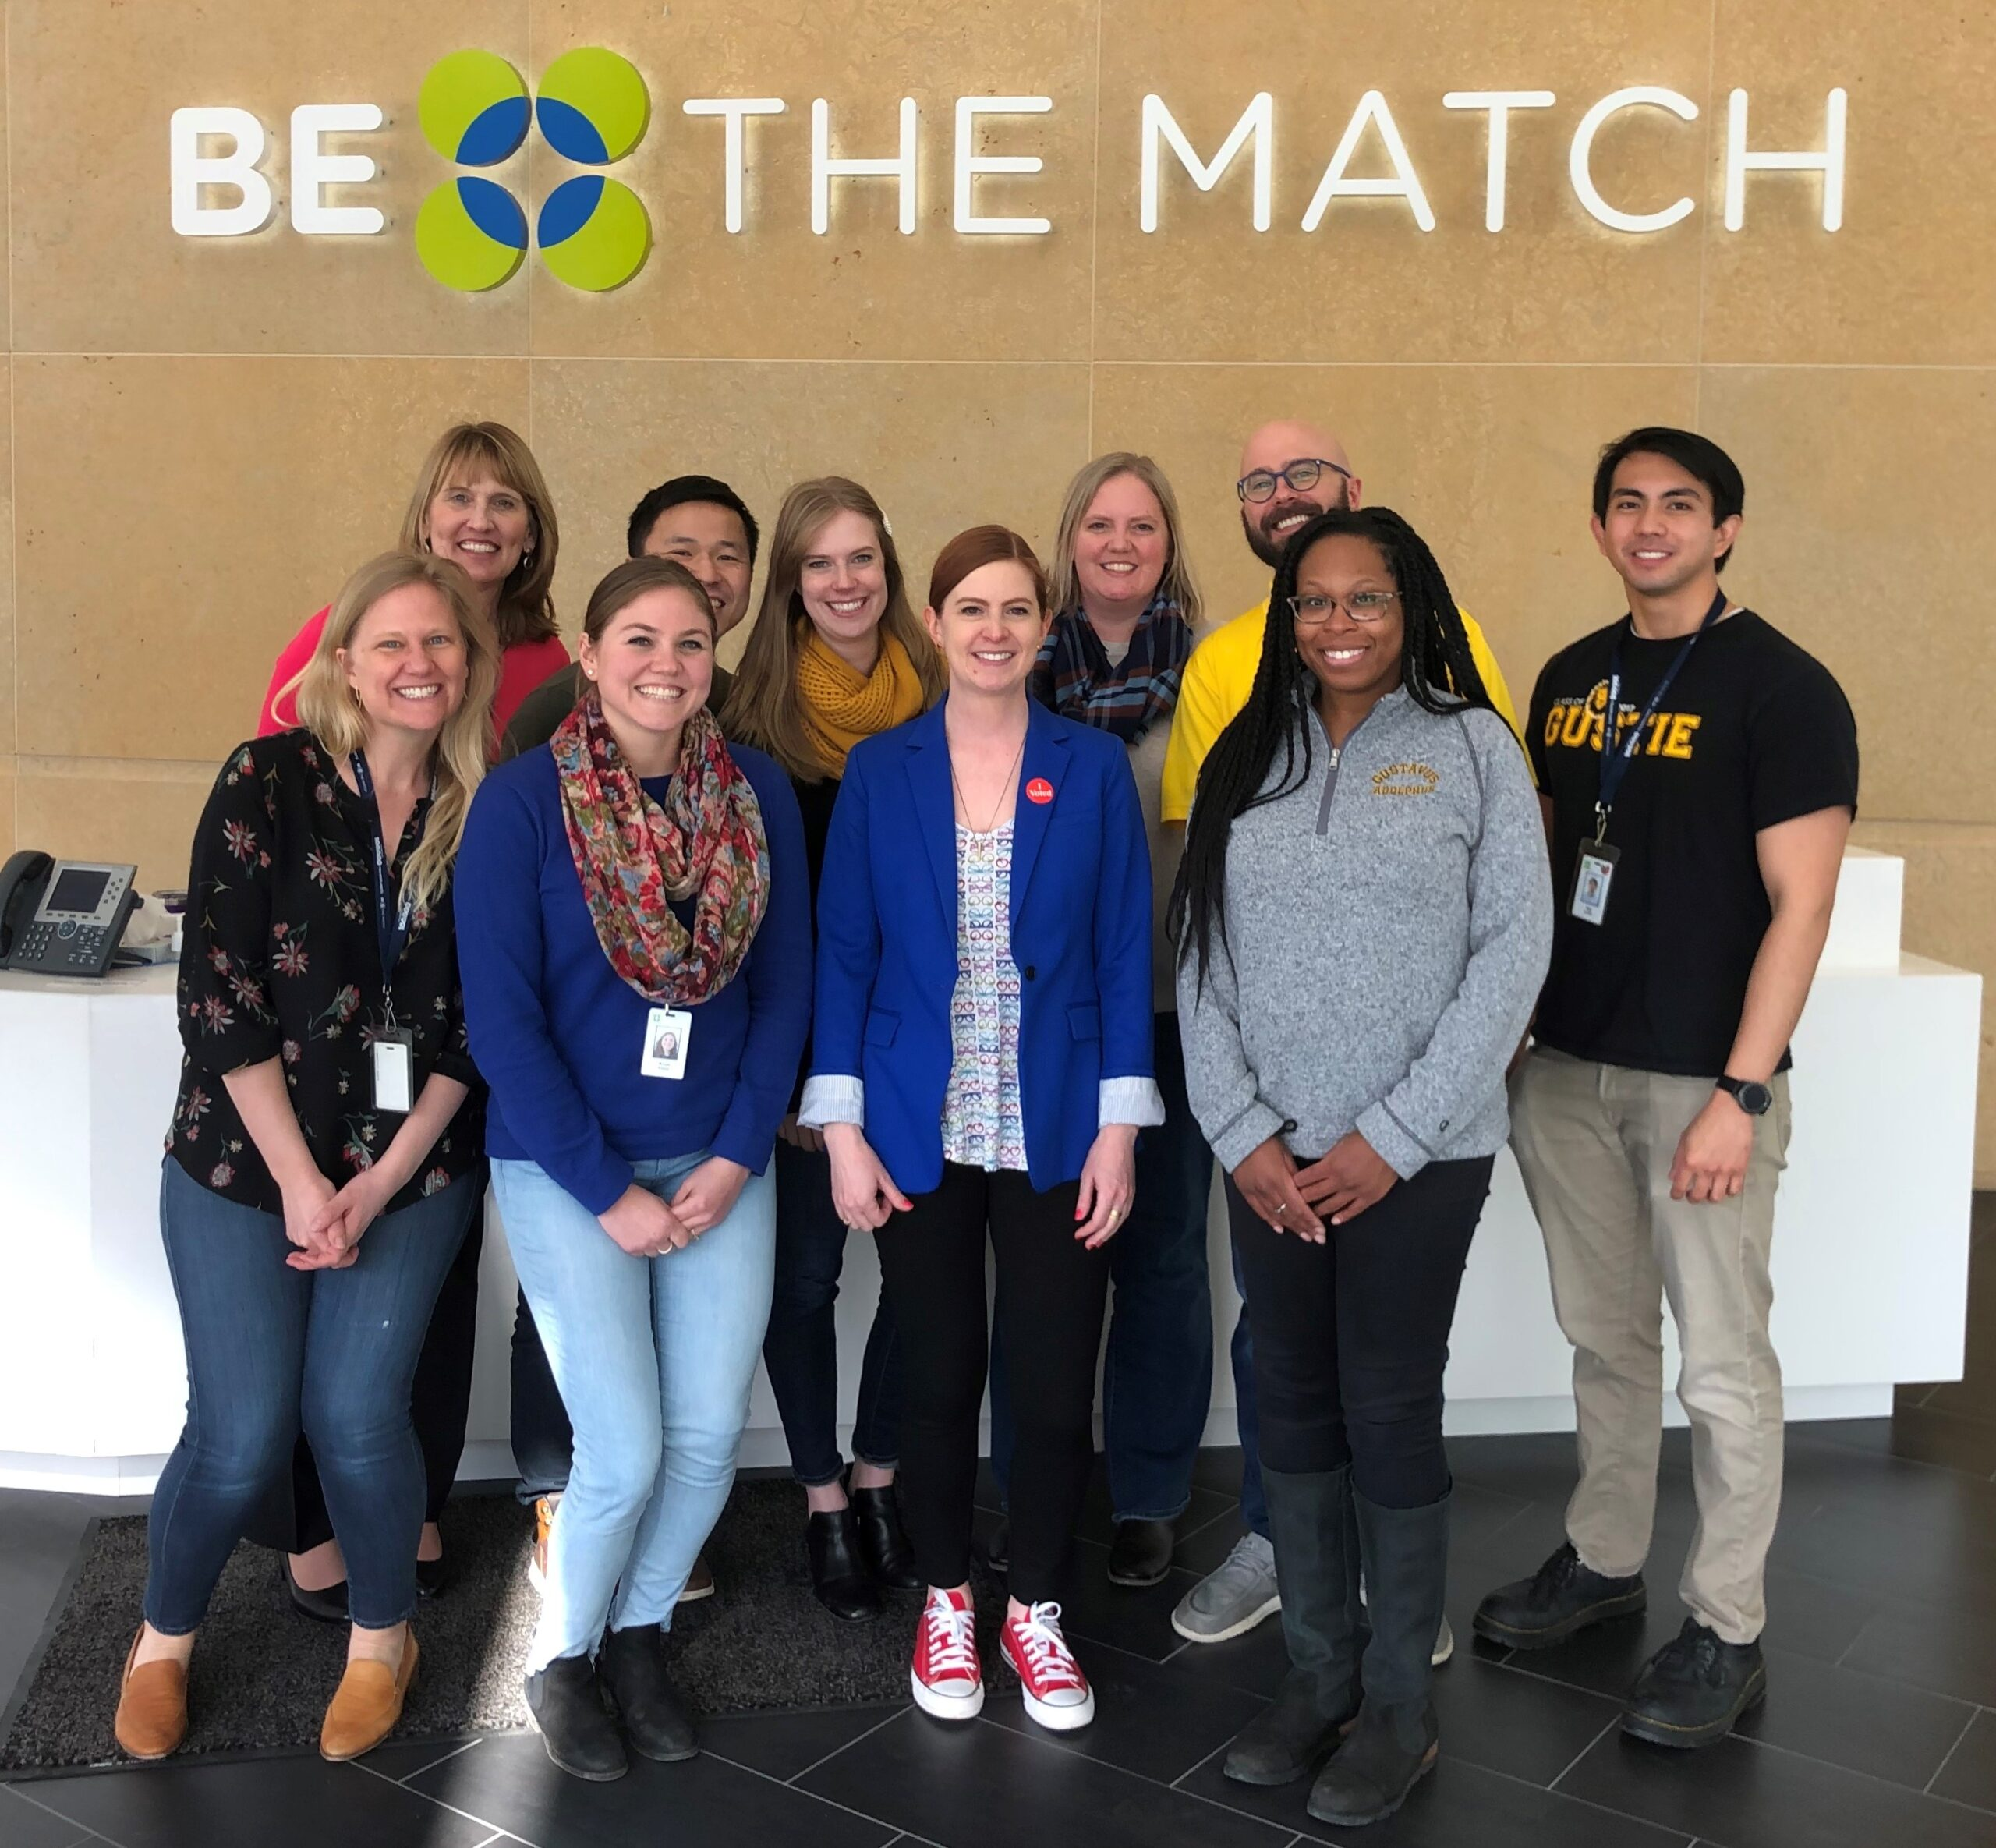 Gusties who work at Be The Match